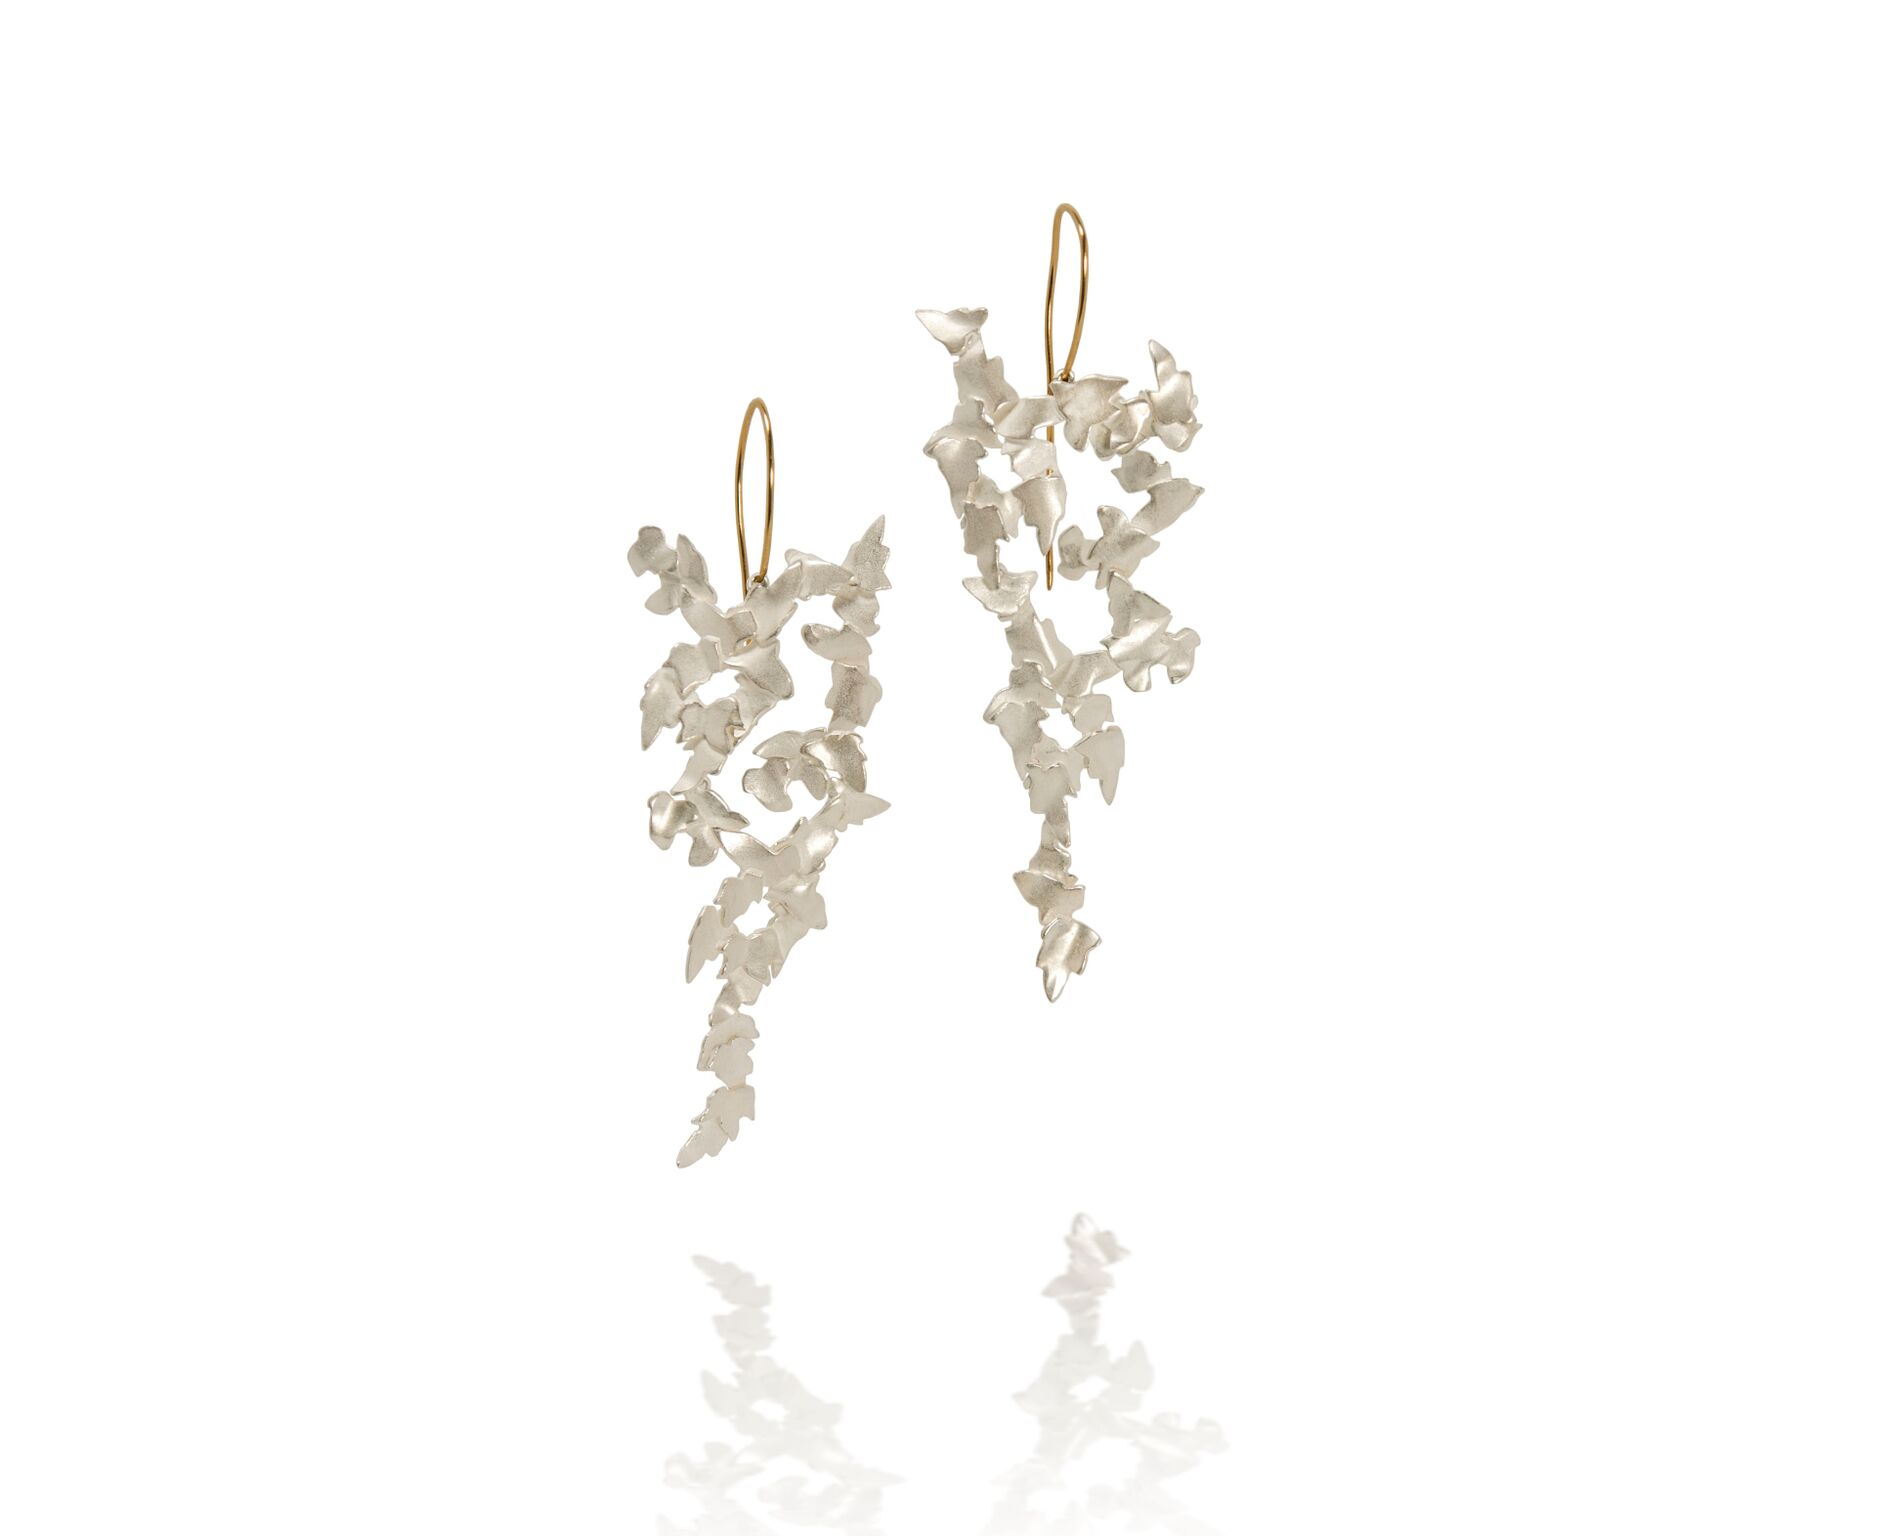 Fiona McAlear - Trailing Ivy earrings. Silver and 9ct Gold $690.jpg